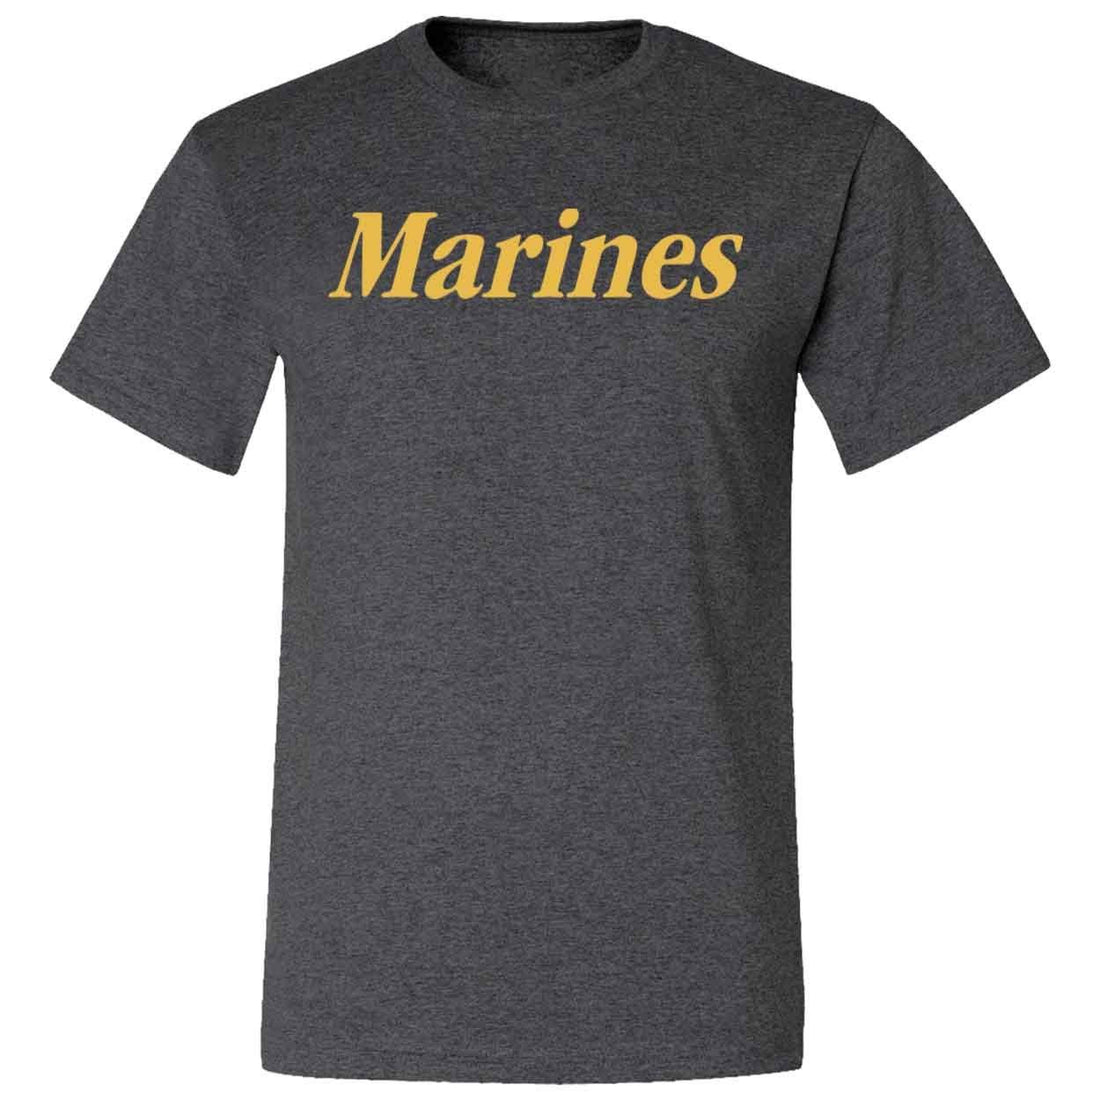 CLOSEOUT Gold Marines Heather Black T-Shirt - Marine Corps Direct